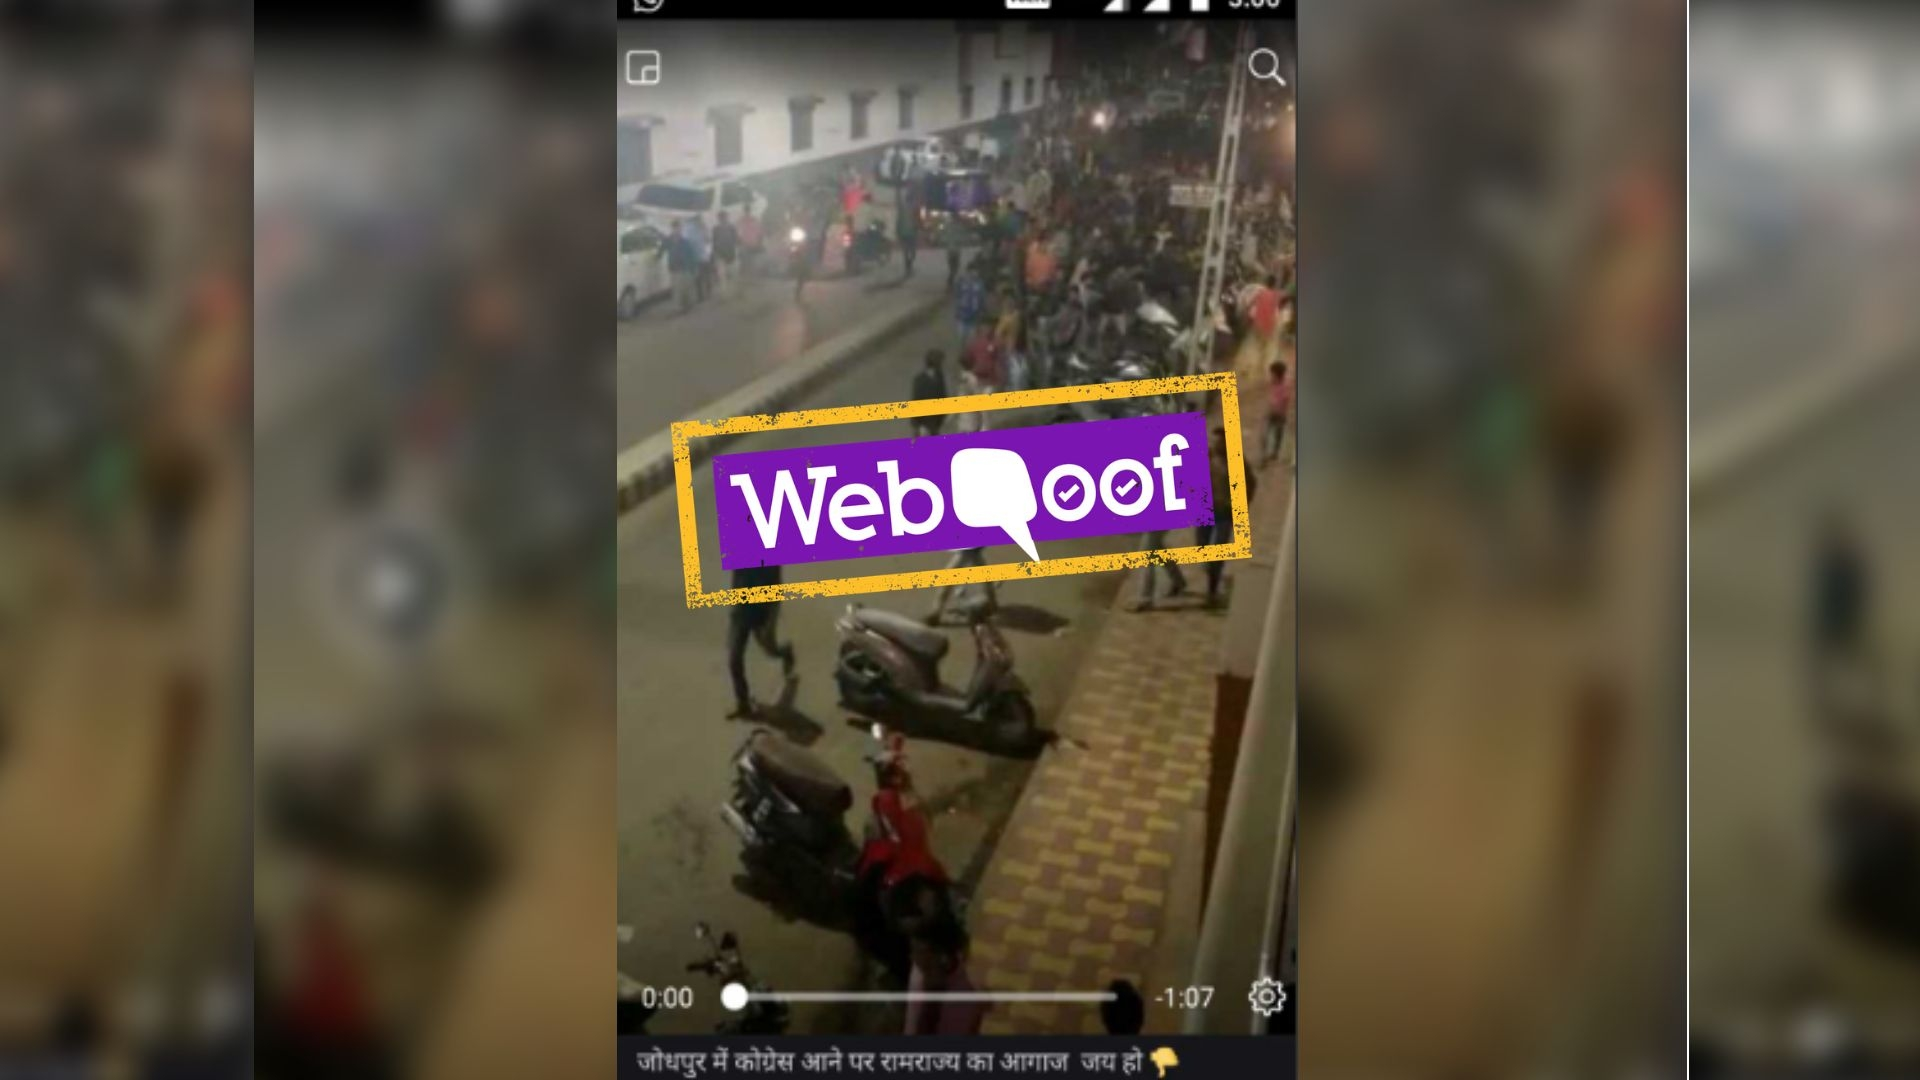 Viral Video Falsely Claims Riots in Rajasthan After Congress Win